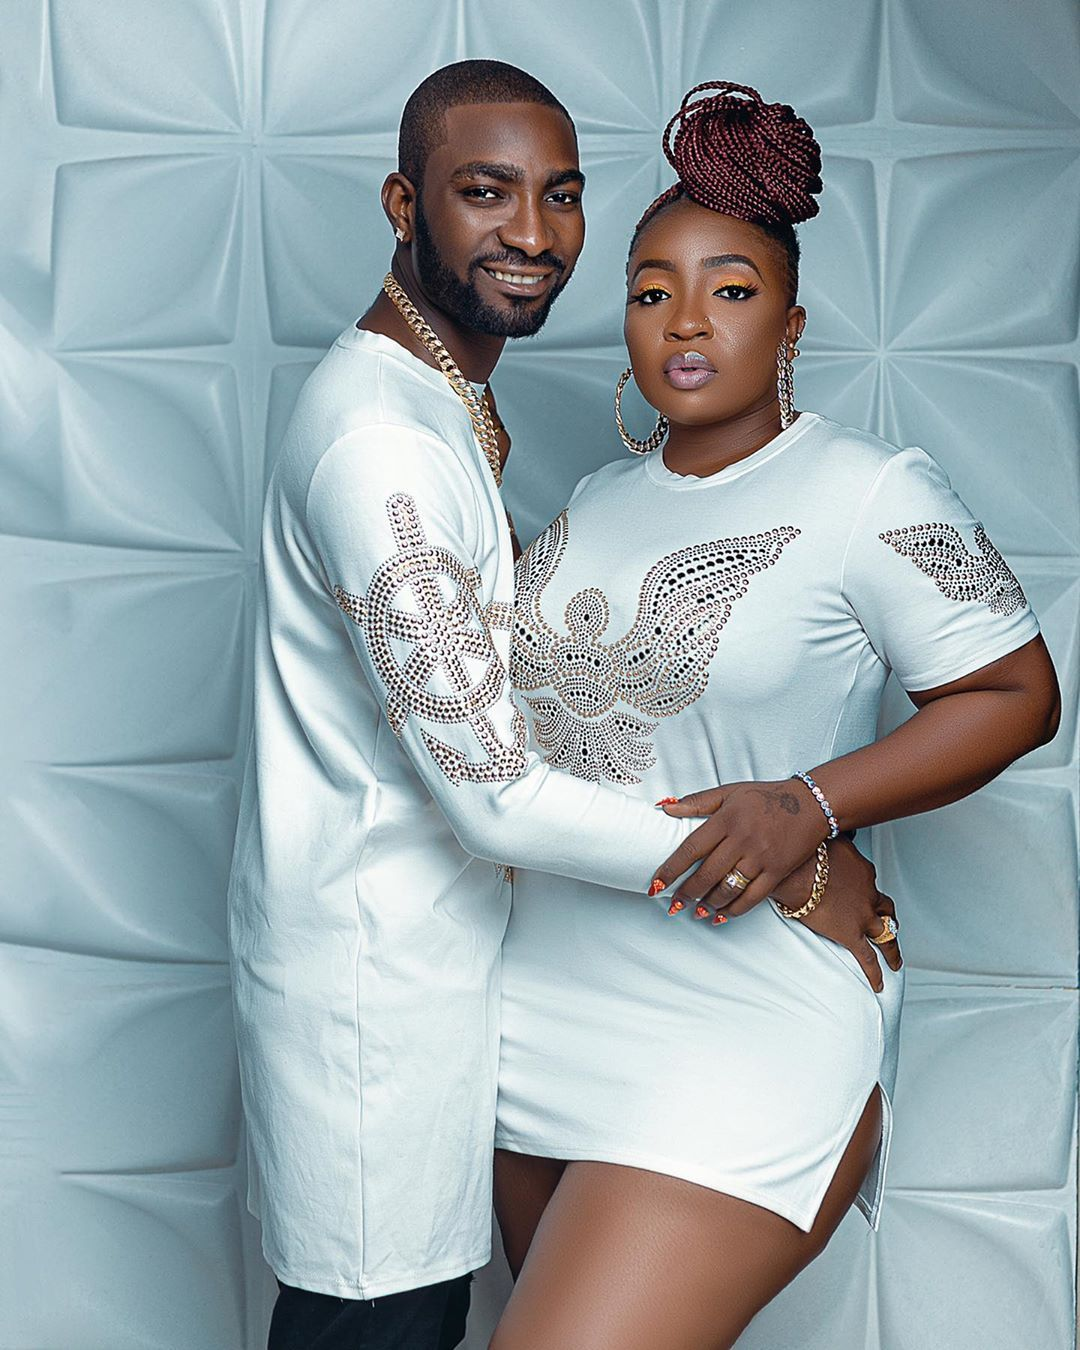 3 years of filing my tank – Anita Joseph to her husband as they celebrate 3  years of friendship | Actresses, Celebrities, Top celebrities